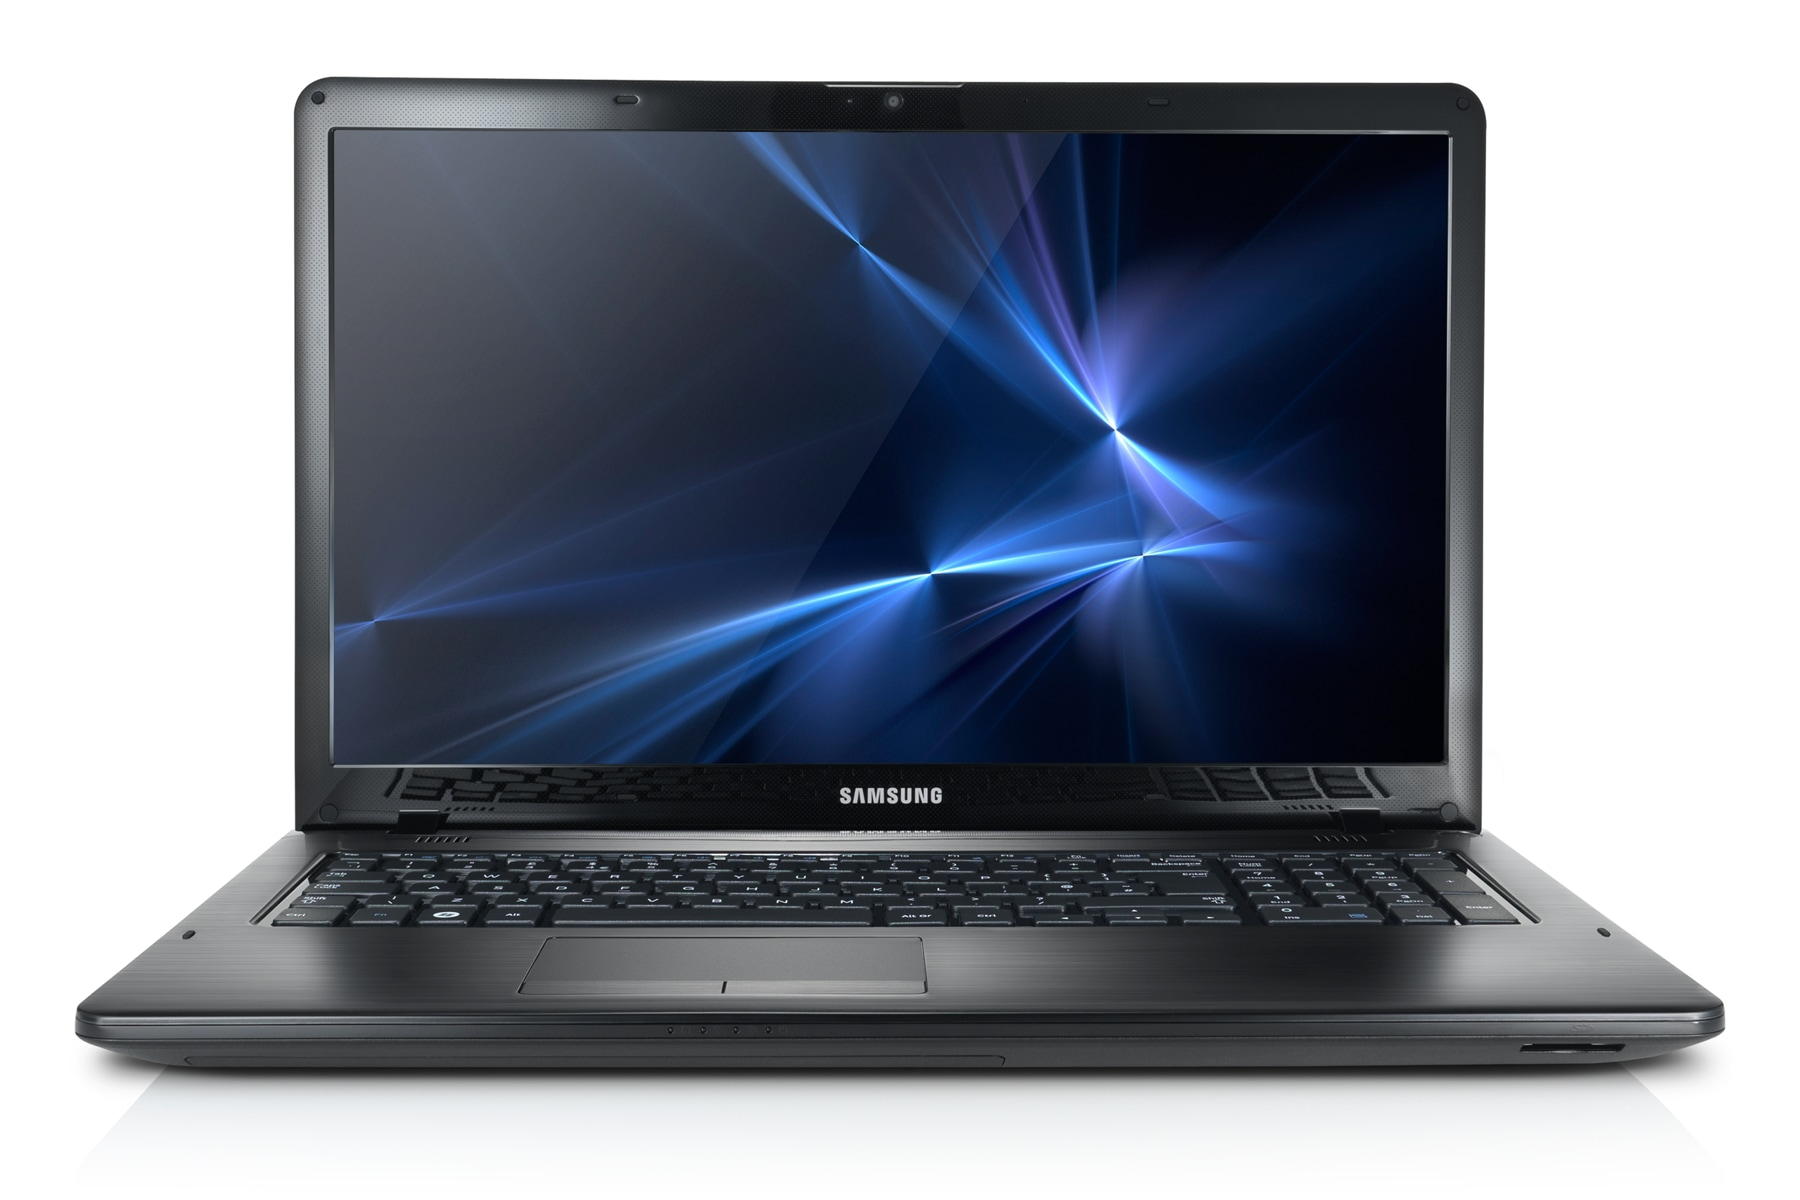 Samsung easy software manager download.